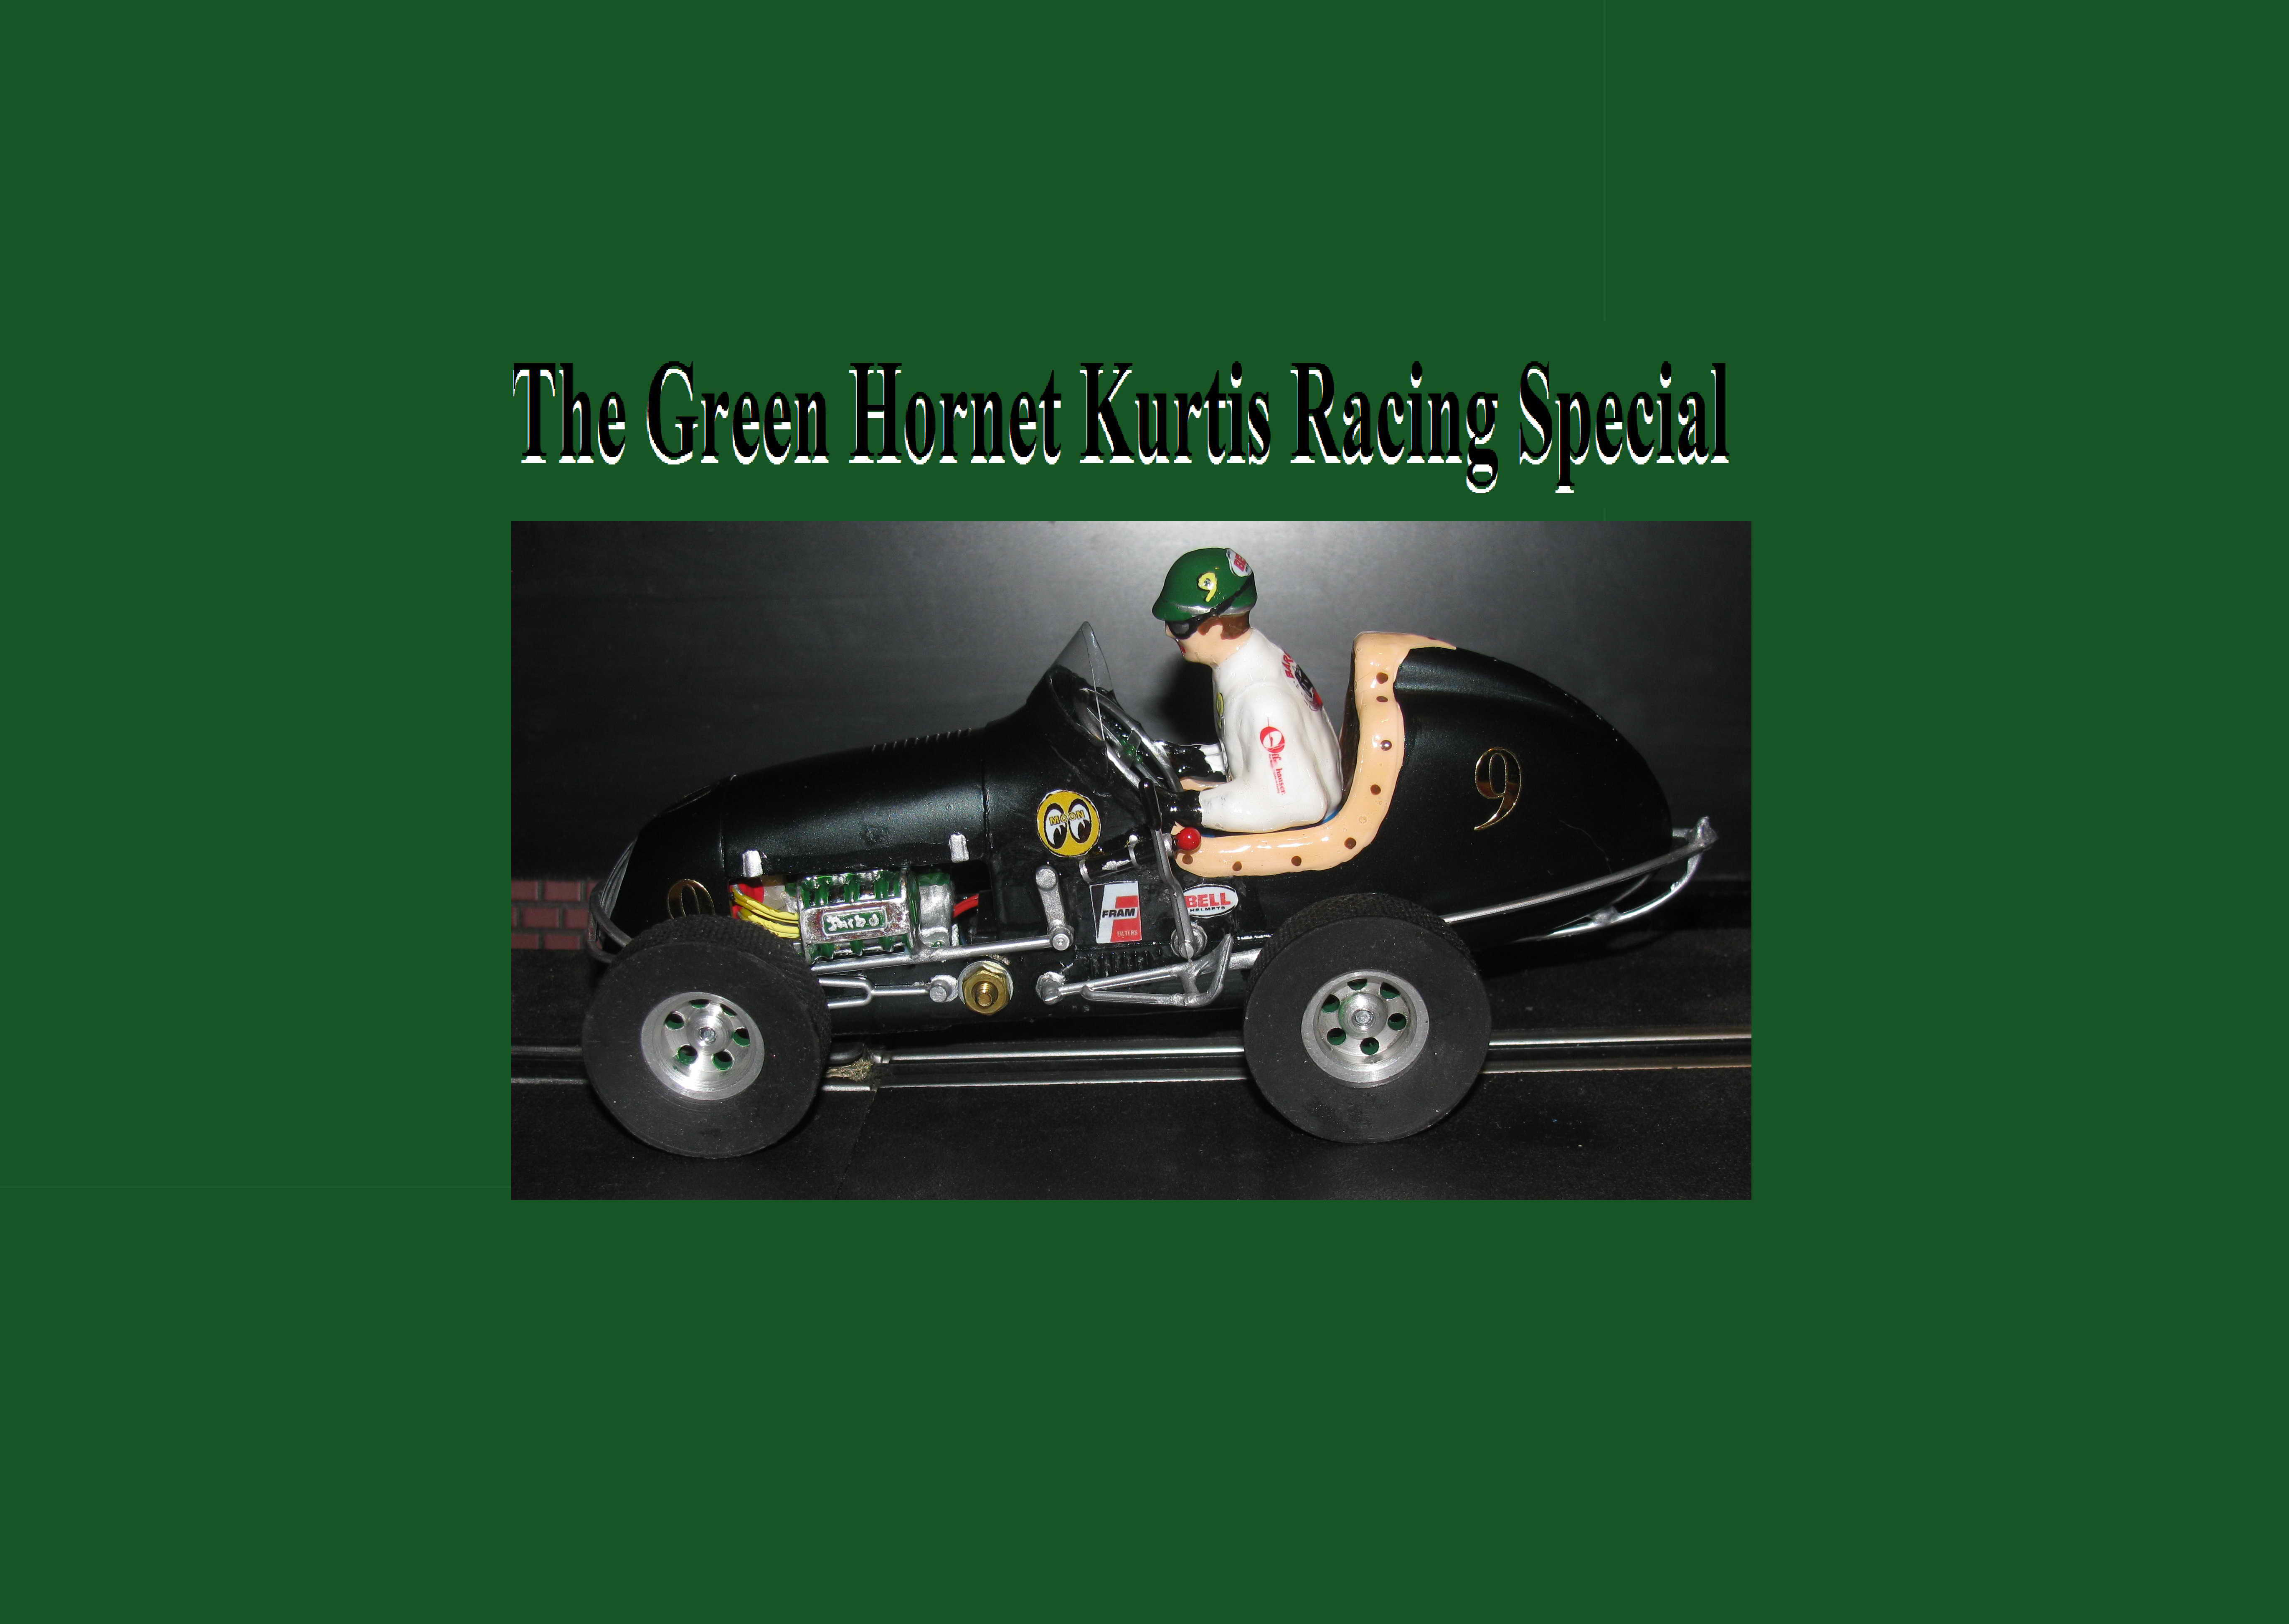 *SOLD* *SPECIAL FOR CHARLES E.* Monogram Midget Racer Green Hornet Kurtis Racing Special Slot Car #9